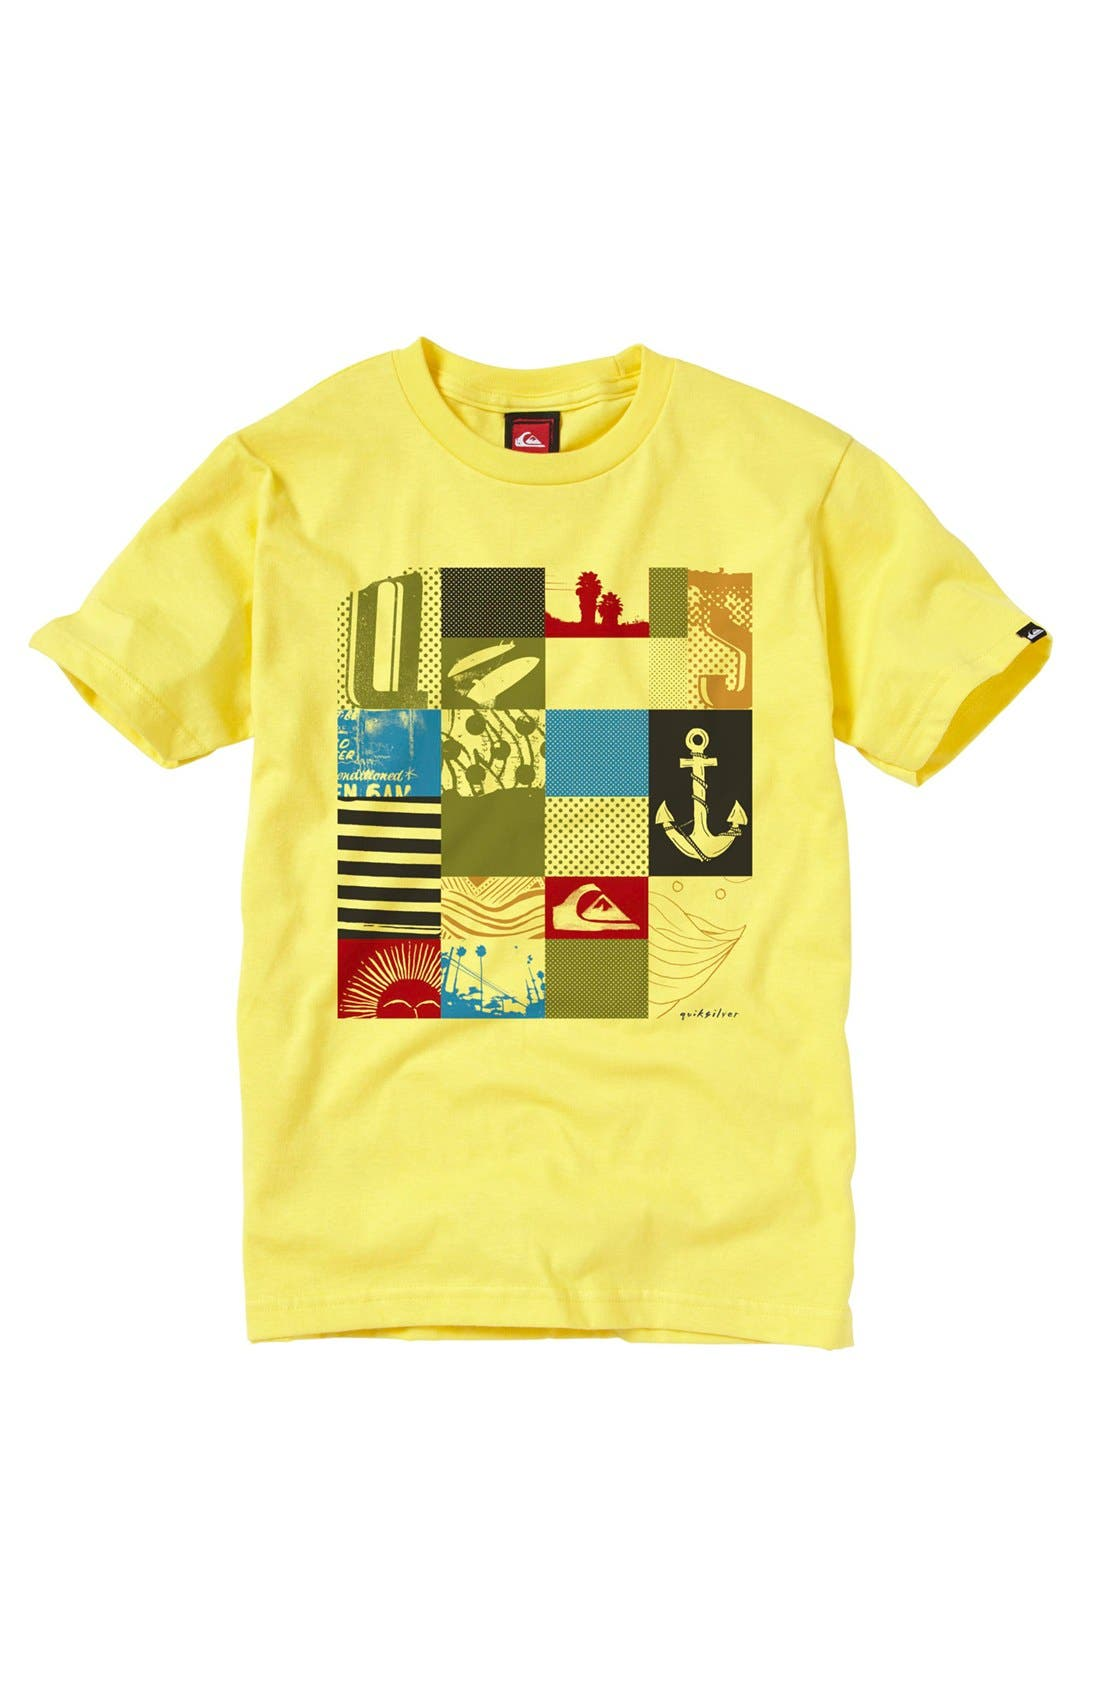 Alternate Image 1 Selected - Quiksilver 'Junk Drawer' T-Shirt (Big Boys)